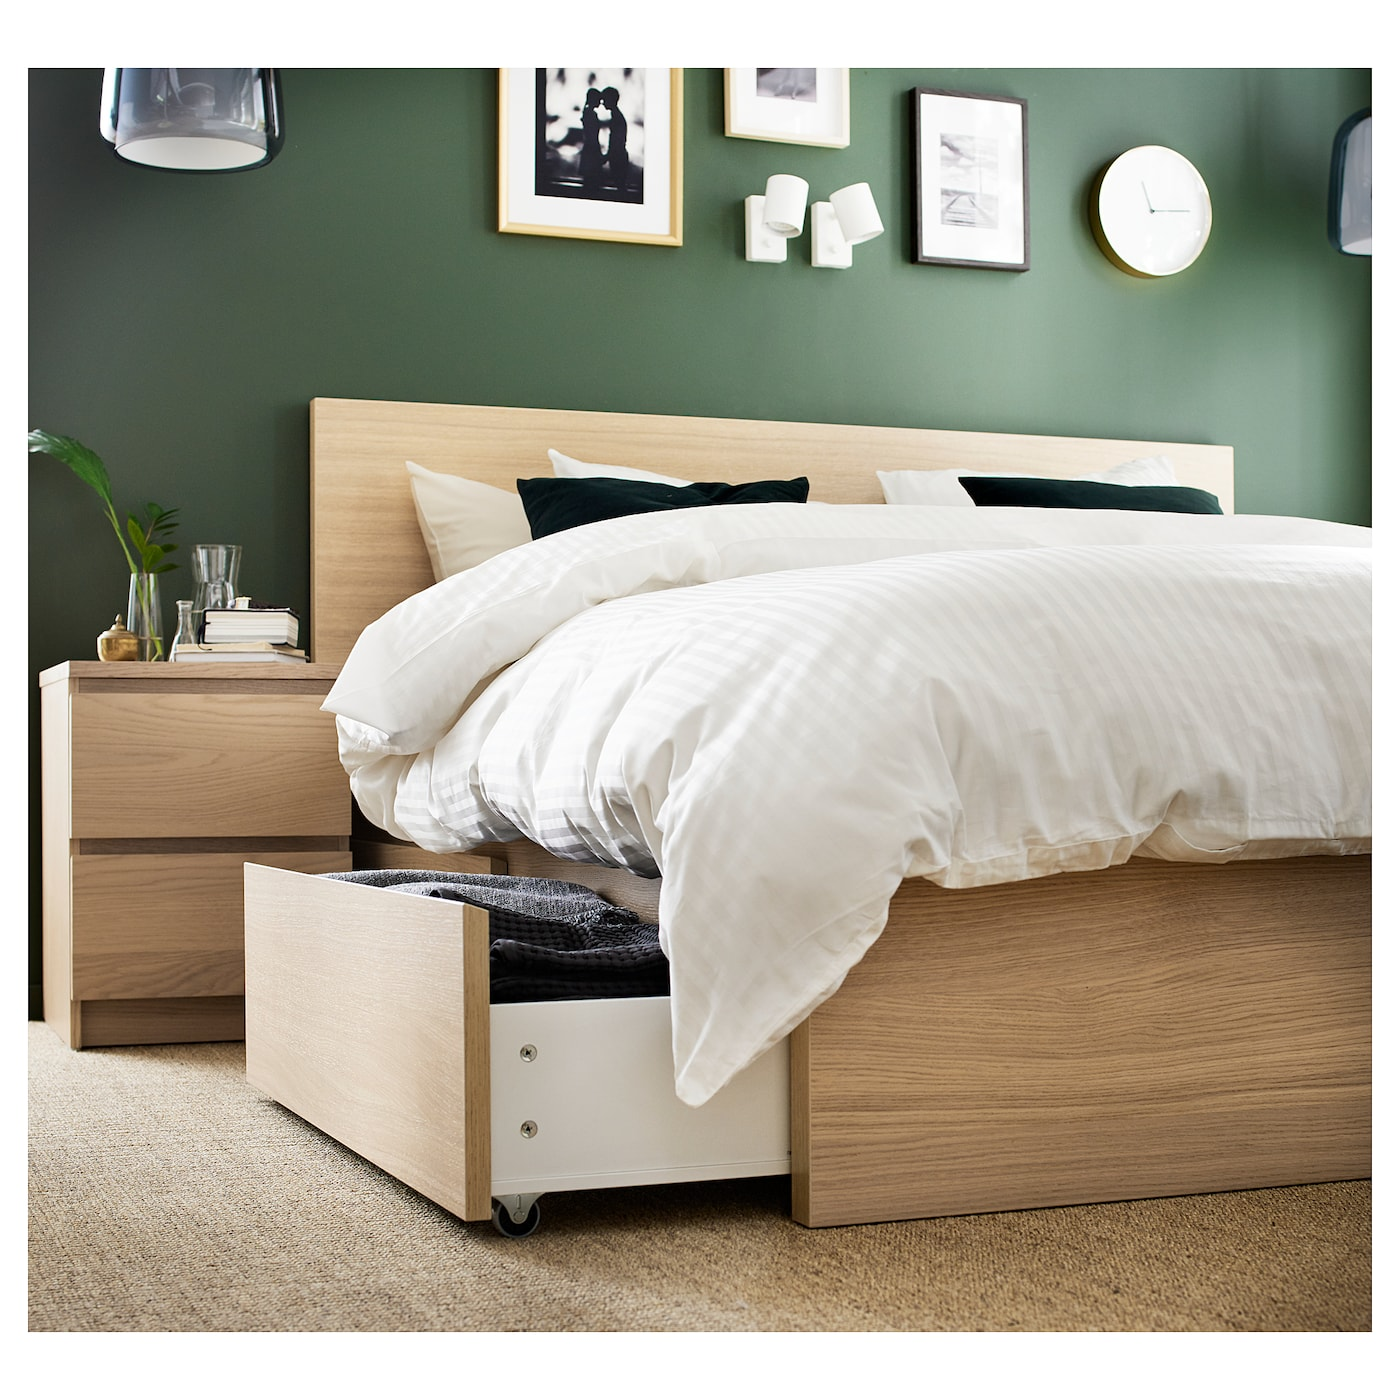 Malm Bed Frame High W 4 Storage Boxes White Stained Oak Veneer Ikea